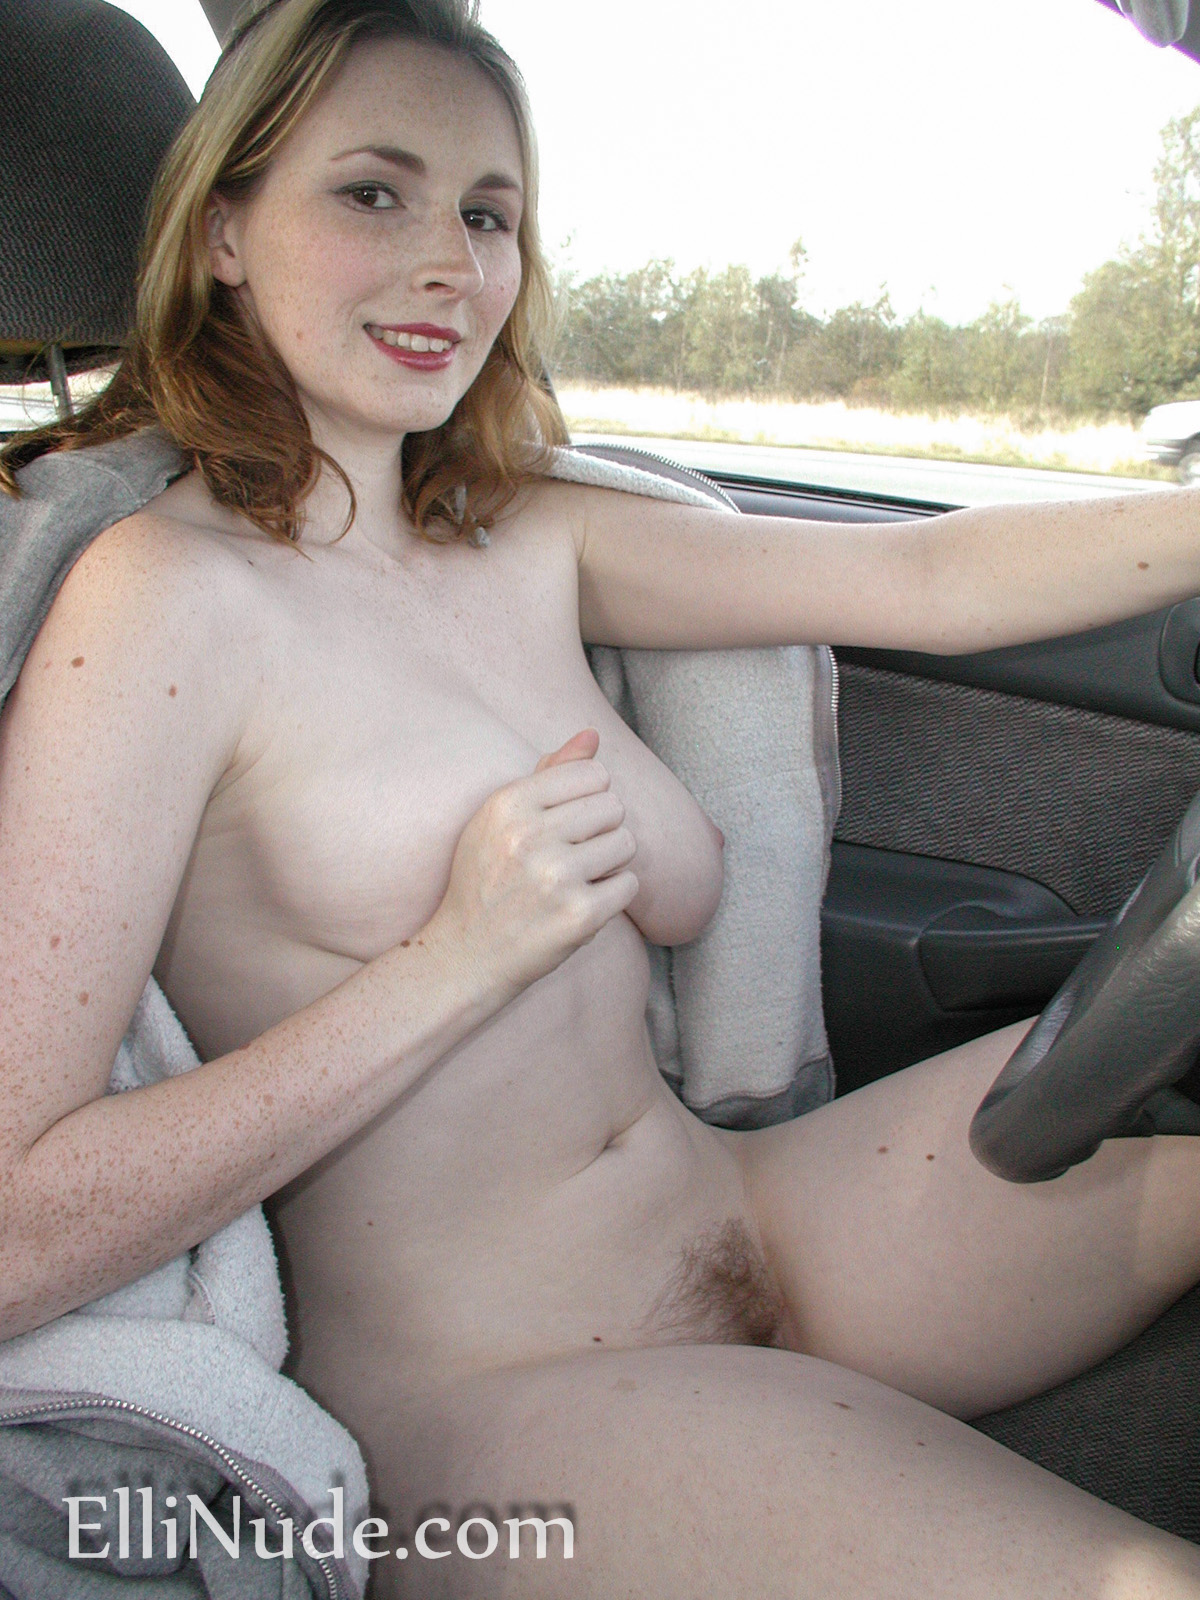 Women nude naked driving